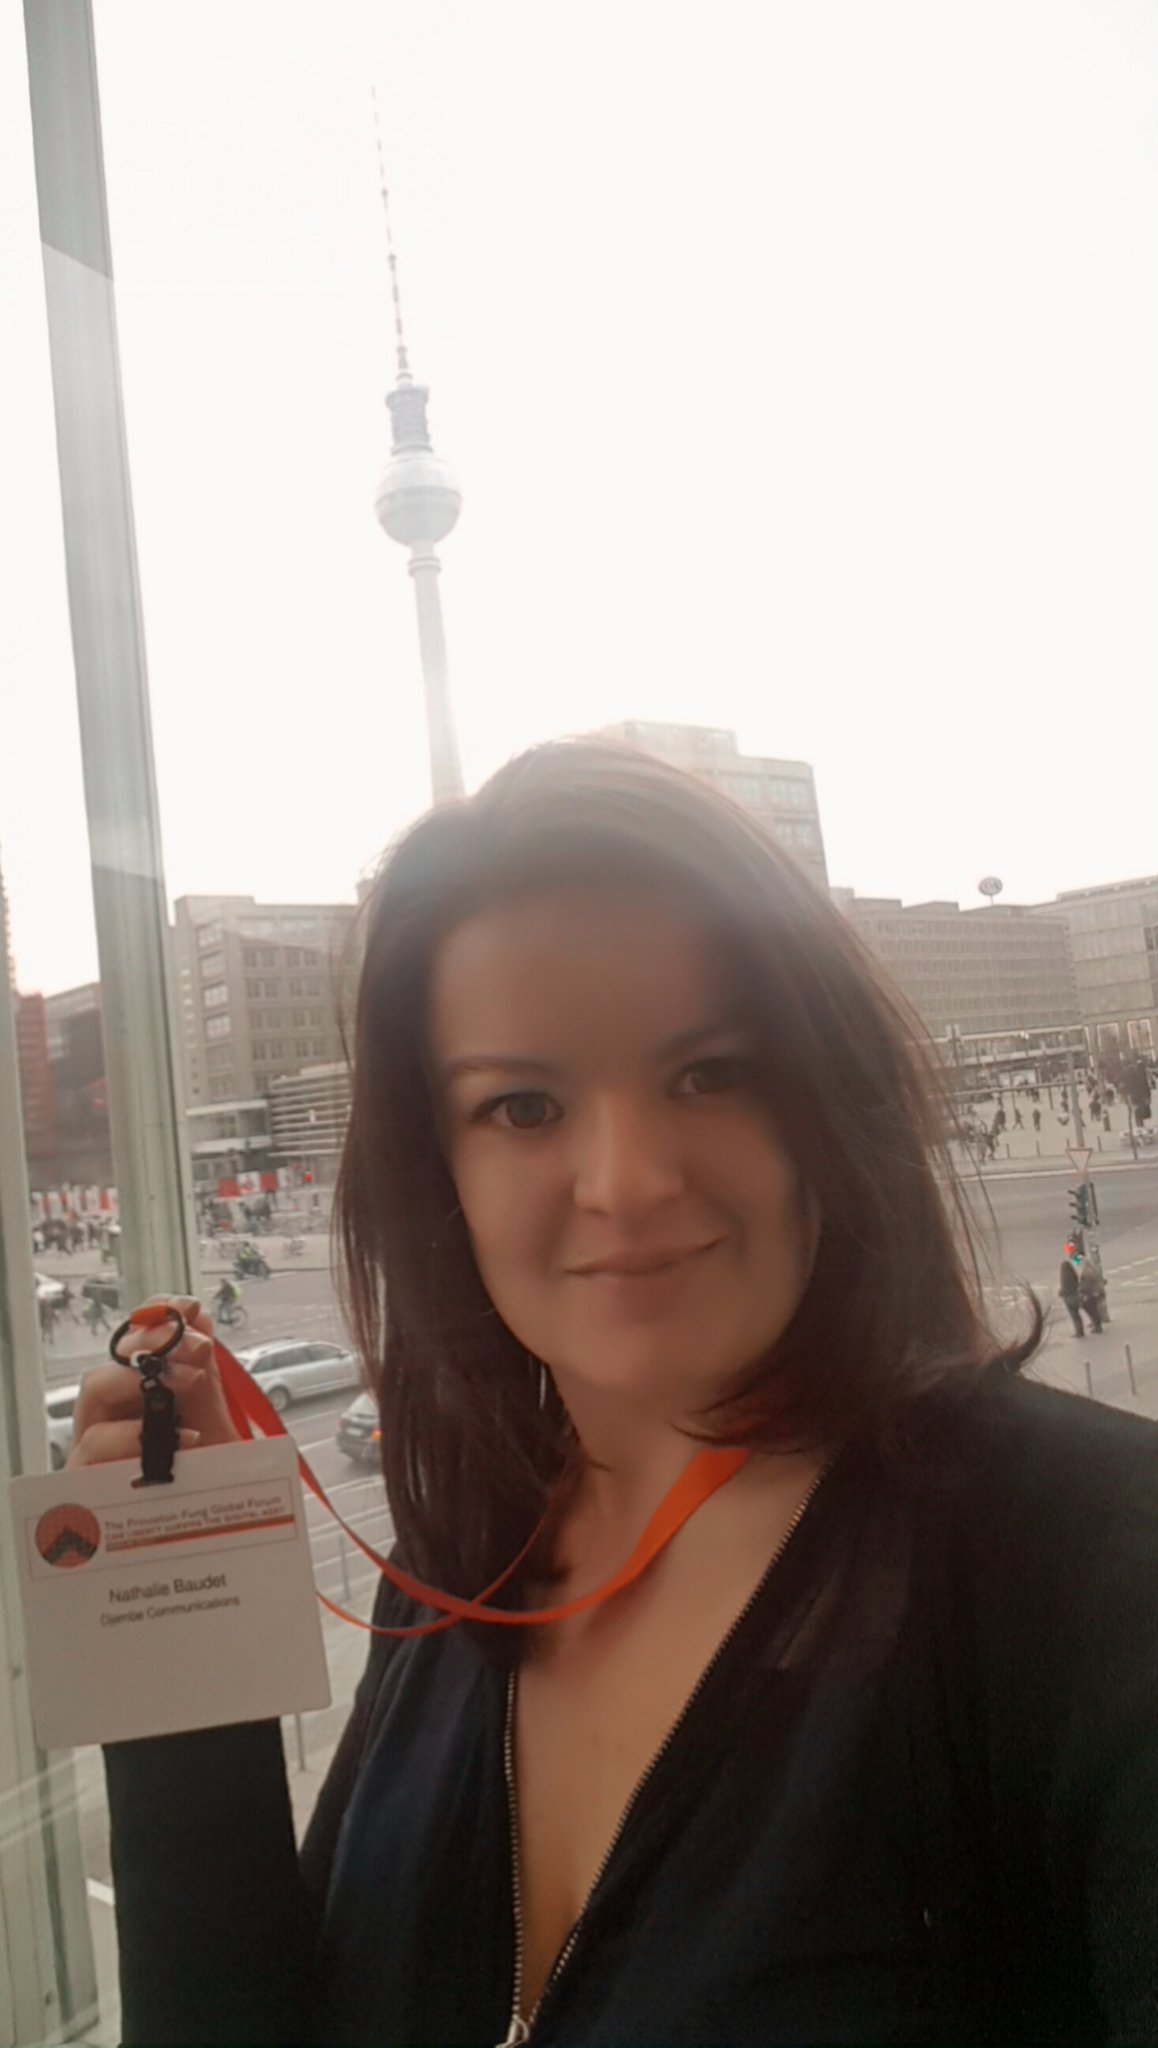 Ready for day 2 of #PrincetonFung #Berlin #digitalisation #CyberSecurity #DigitalAge #dataprotection @djembepr https://t.co/YVyTTbSXJF